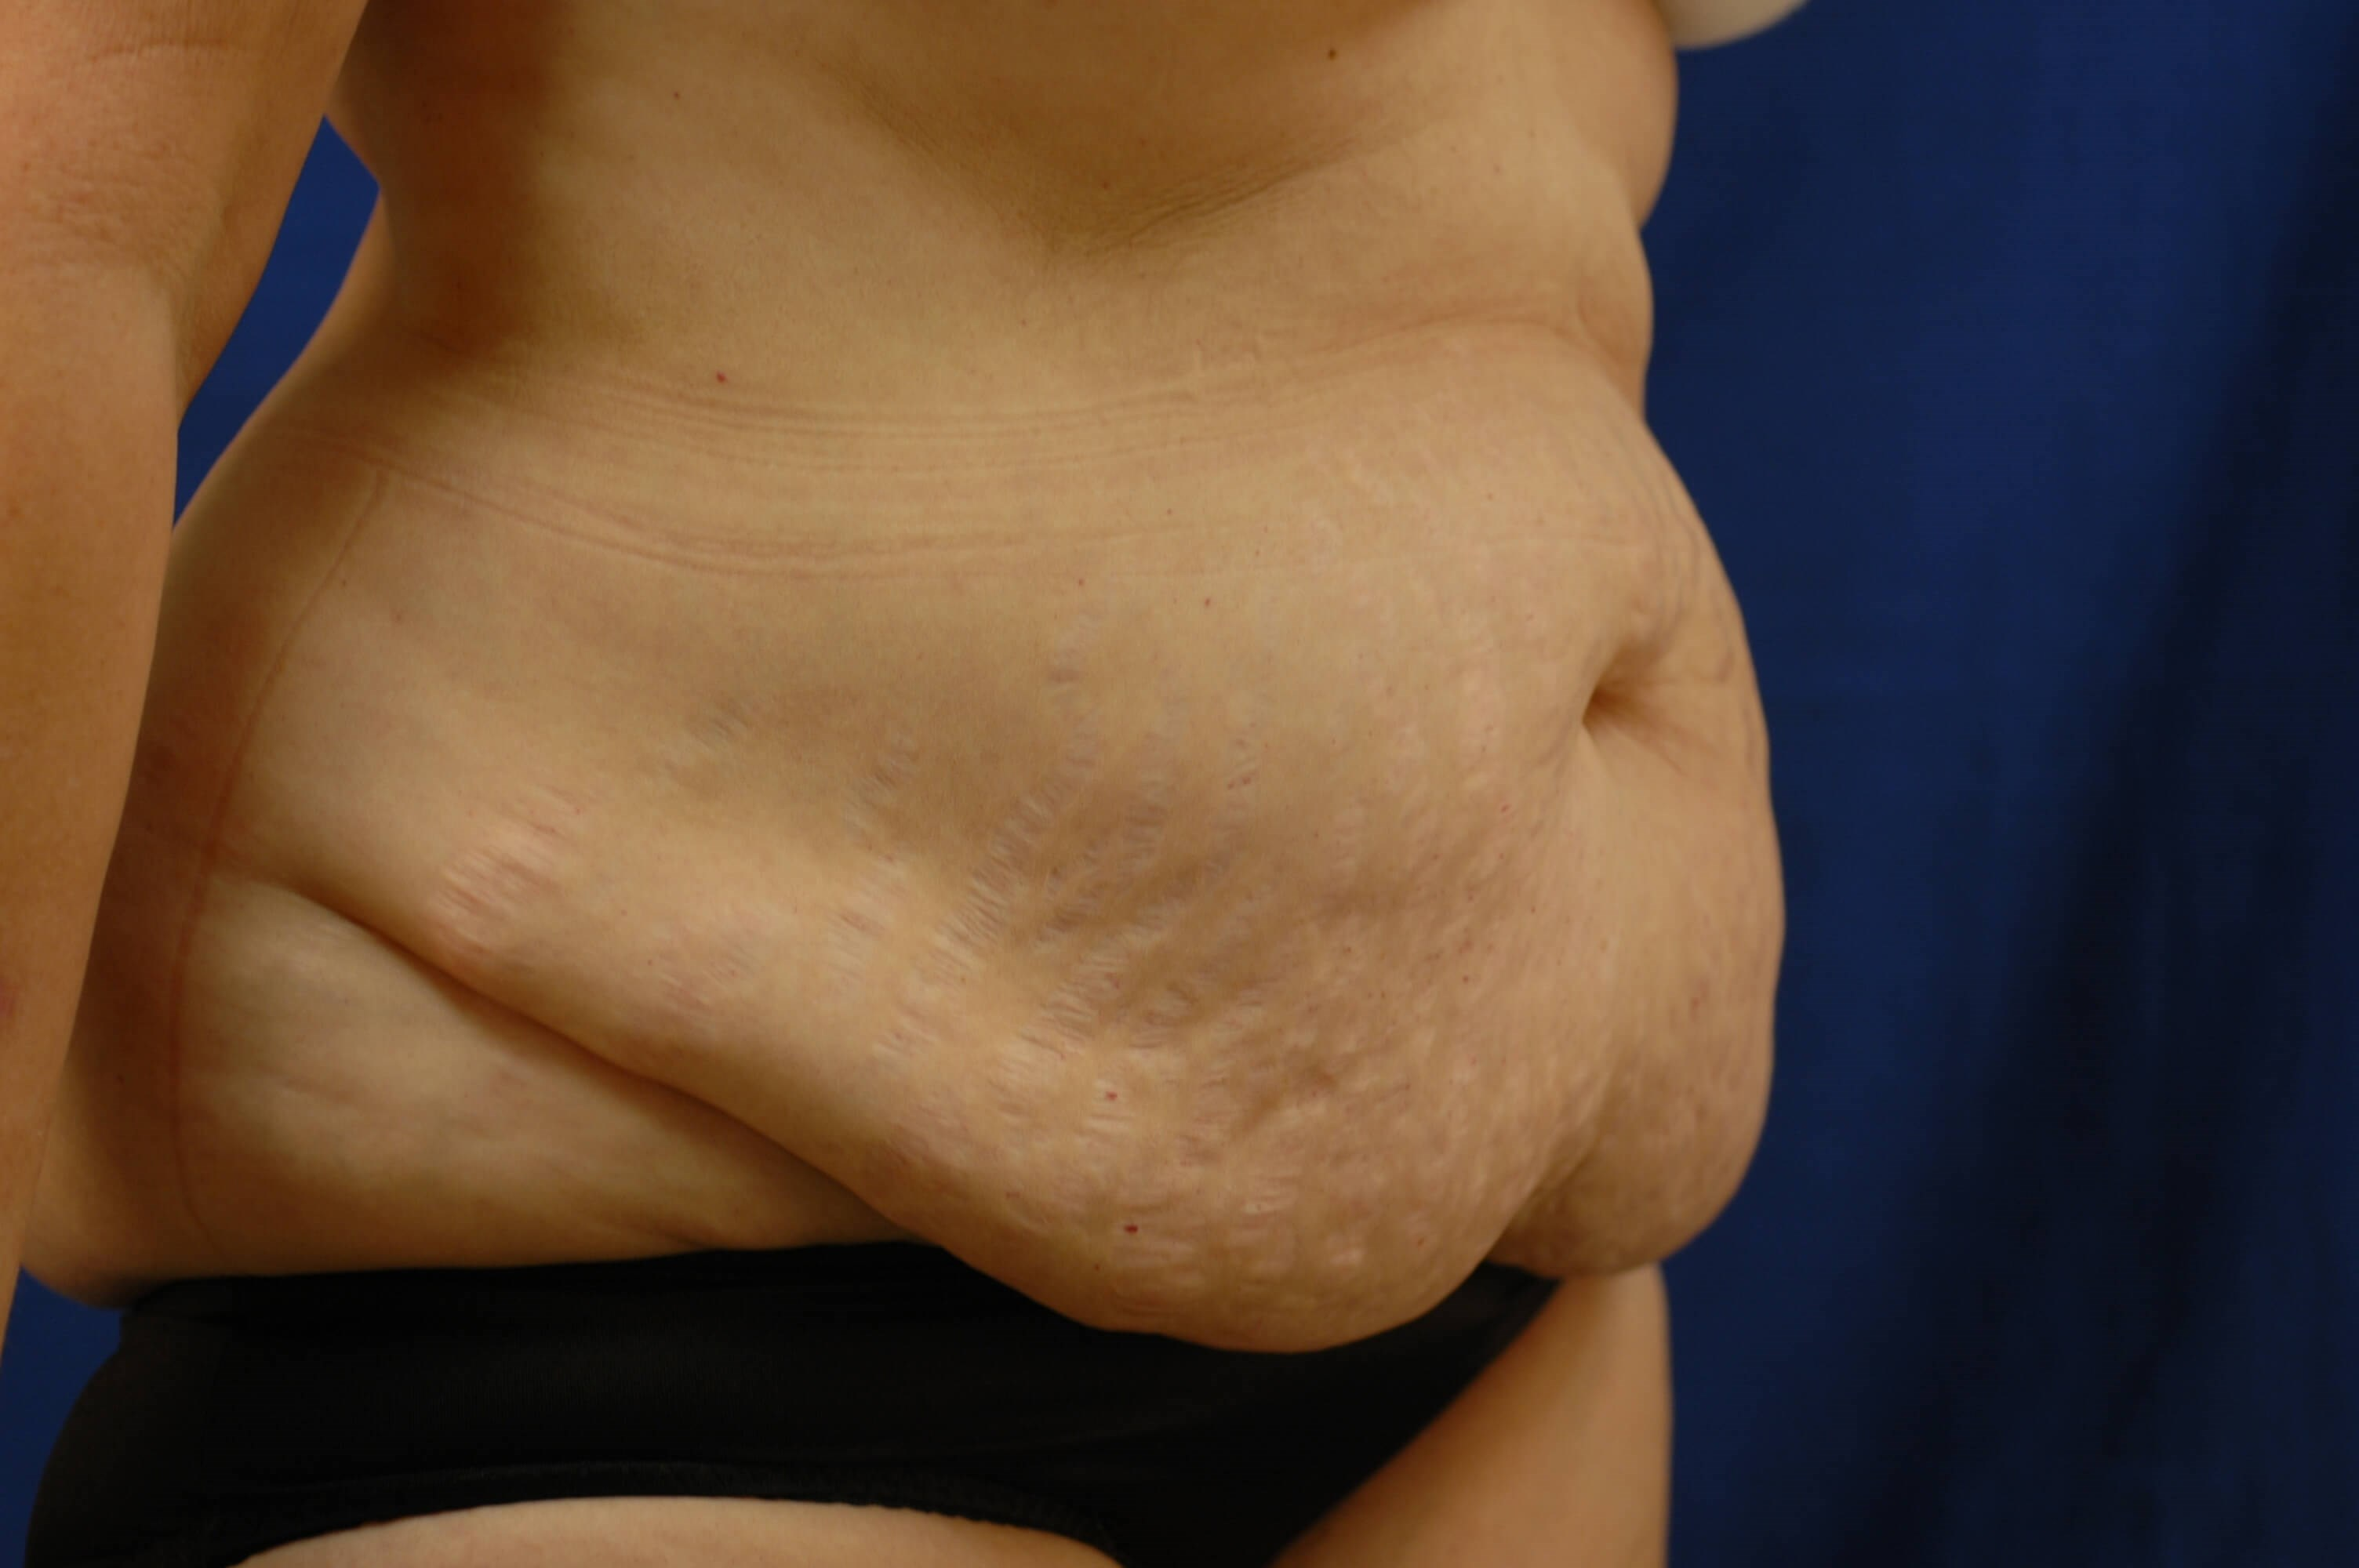 Newport Beach Body Contouring Oblique View Before